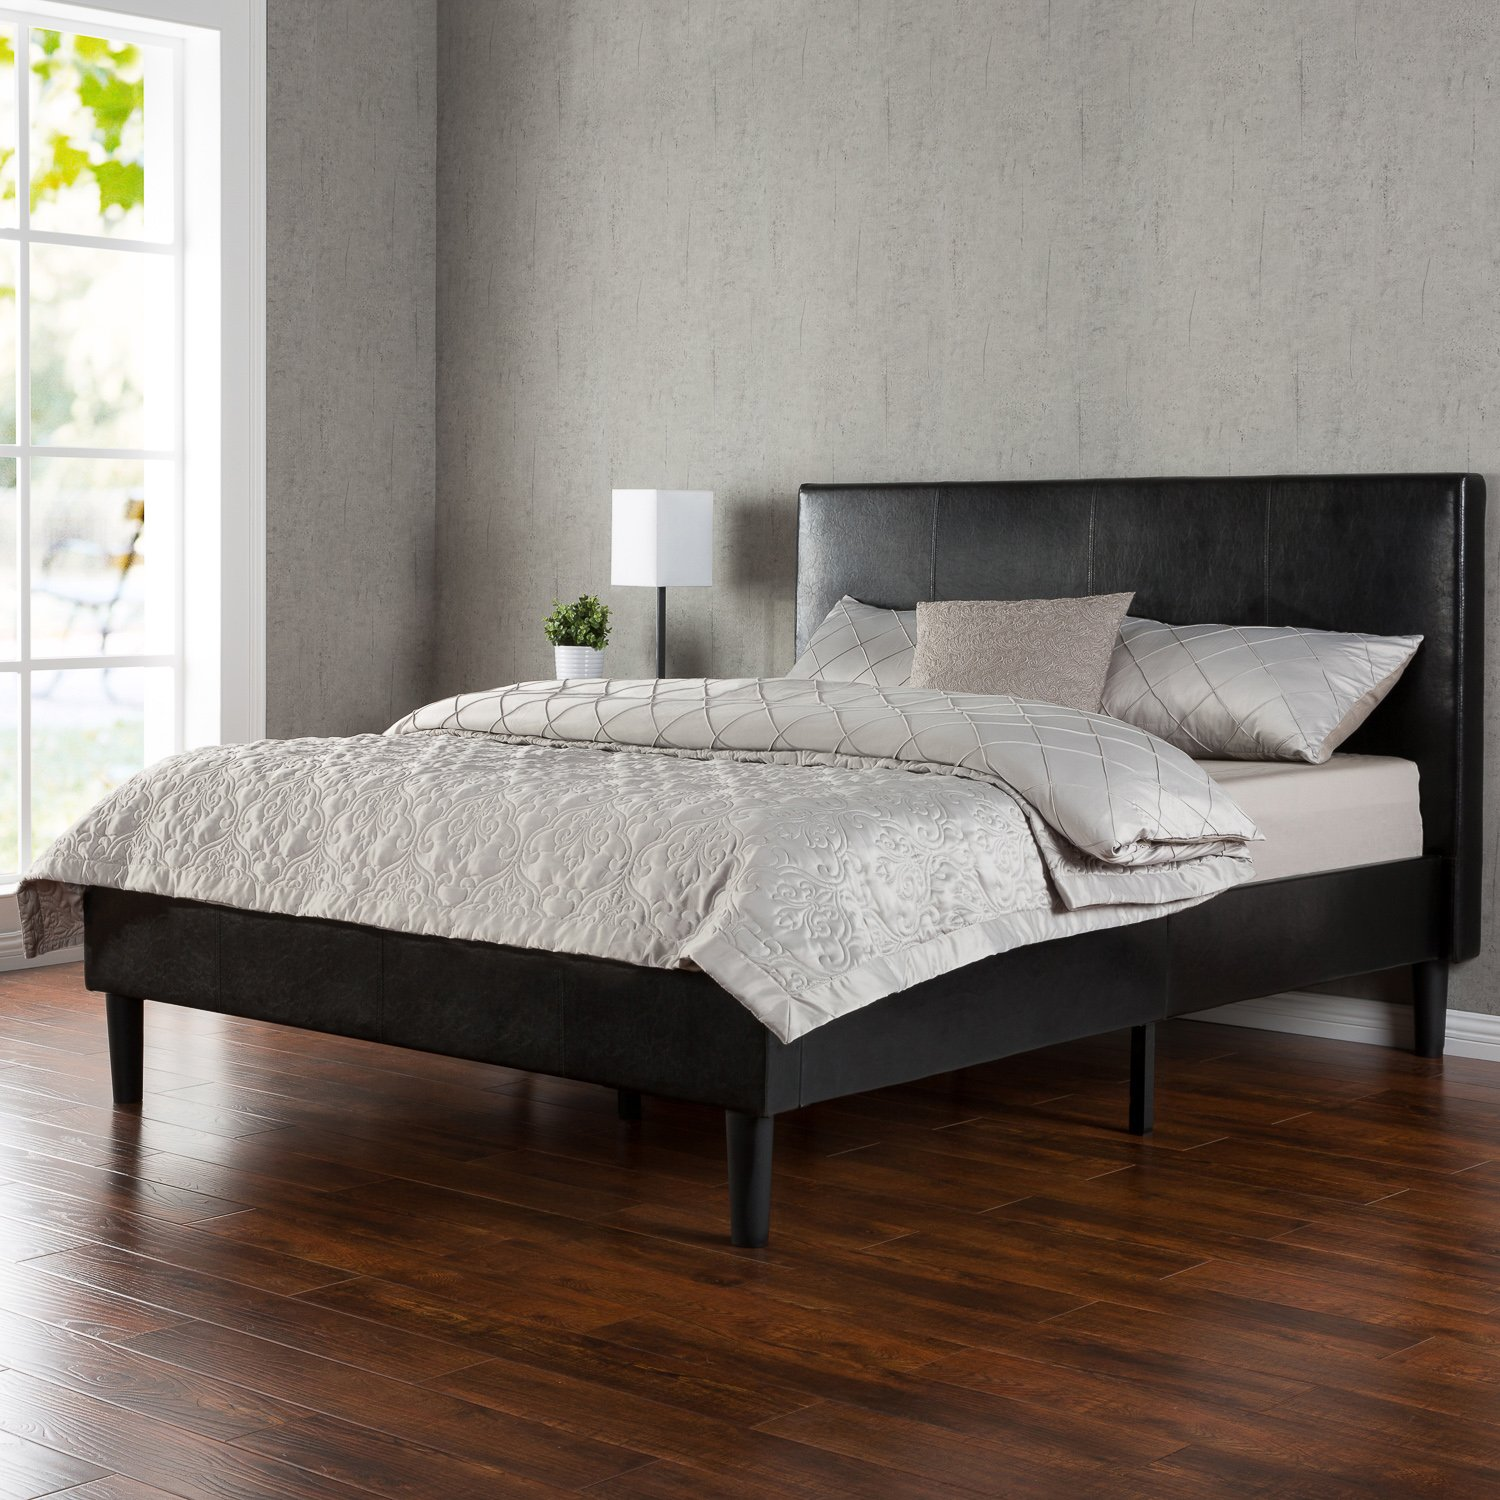 Zinus Platform Beds Sale Ease Bedding With Style